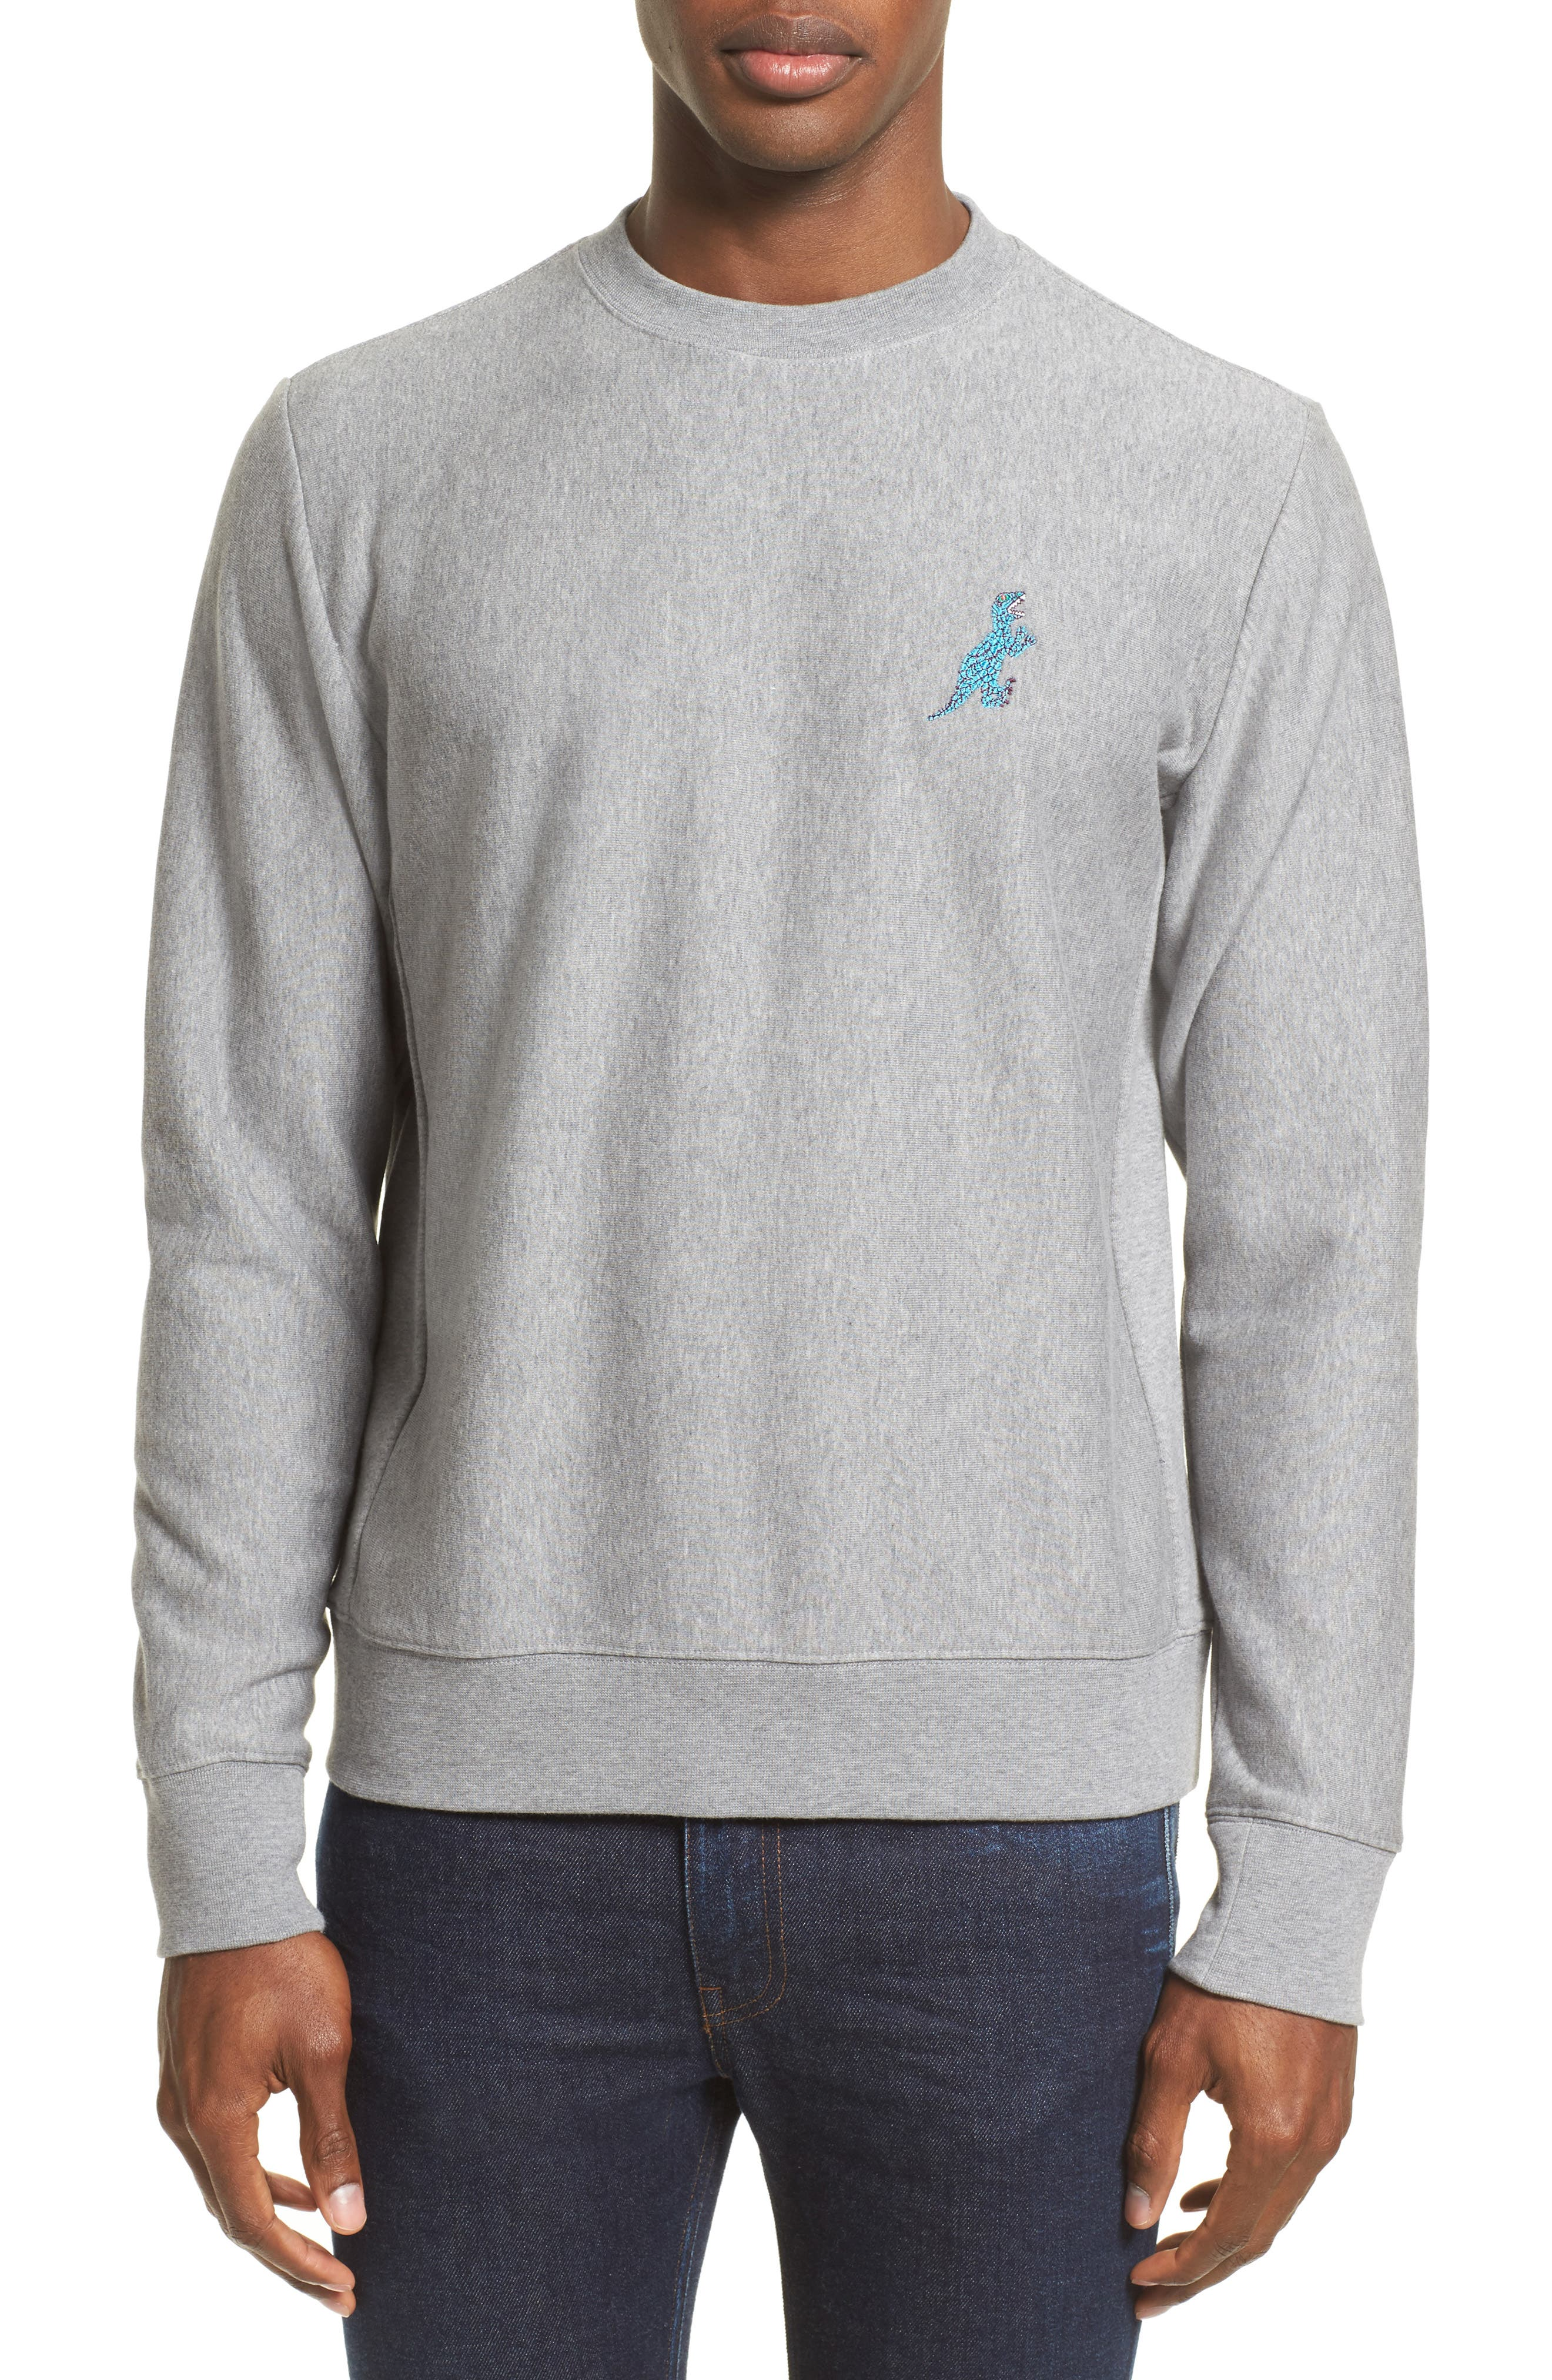 Alternate Image 1 Selected - PS Paul Smith Dino Dino Embroidered Sweatshirt